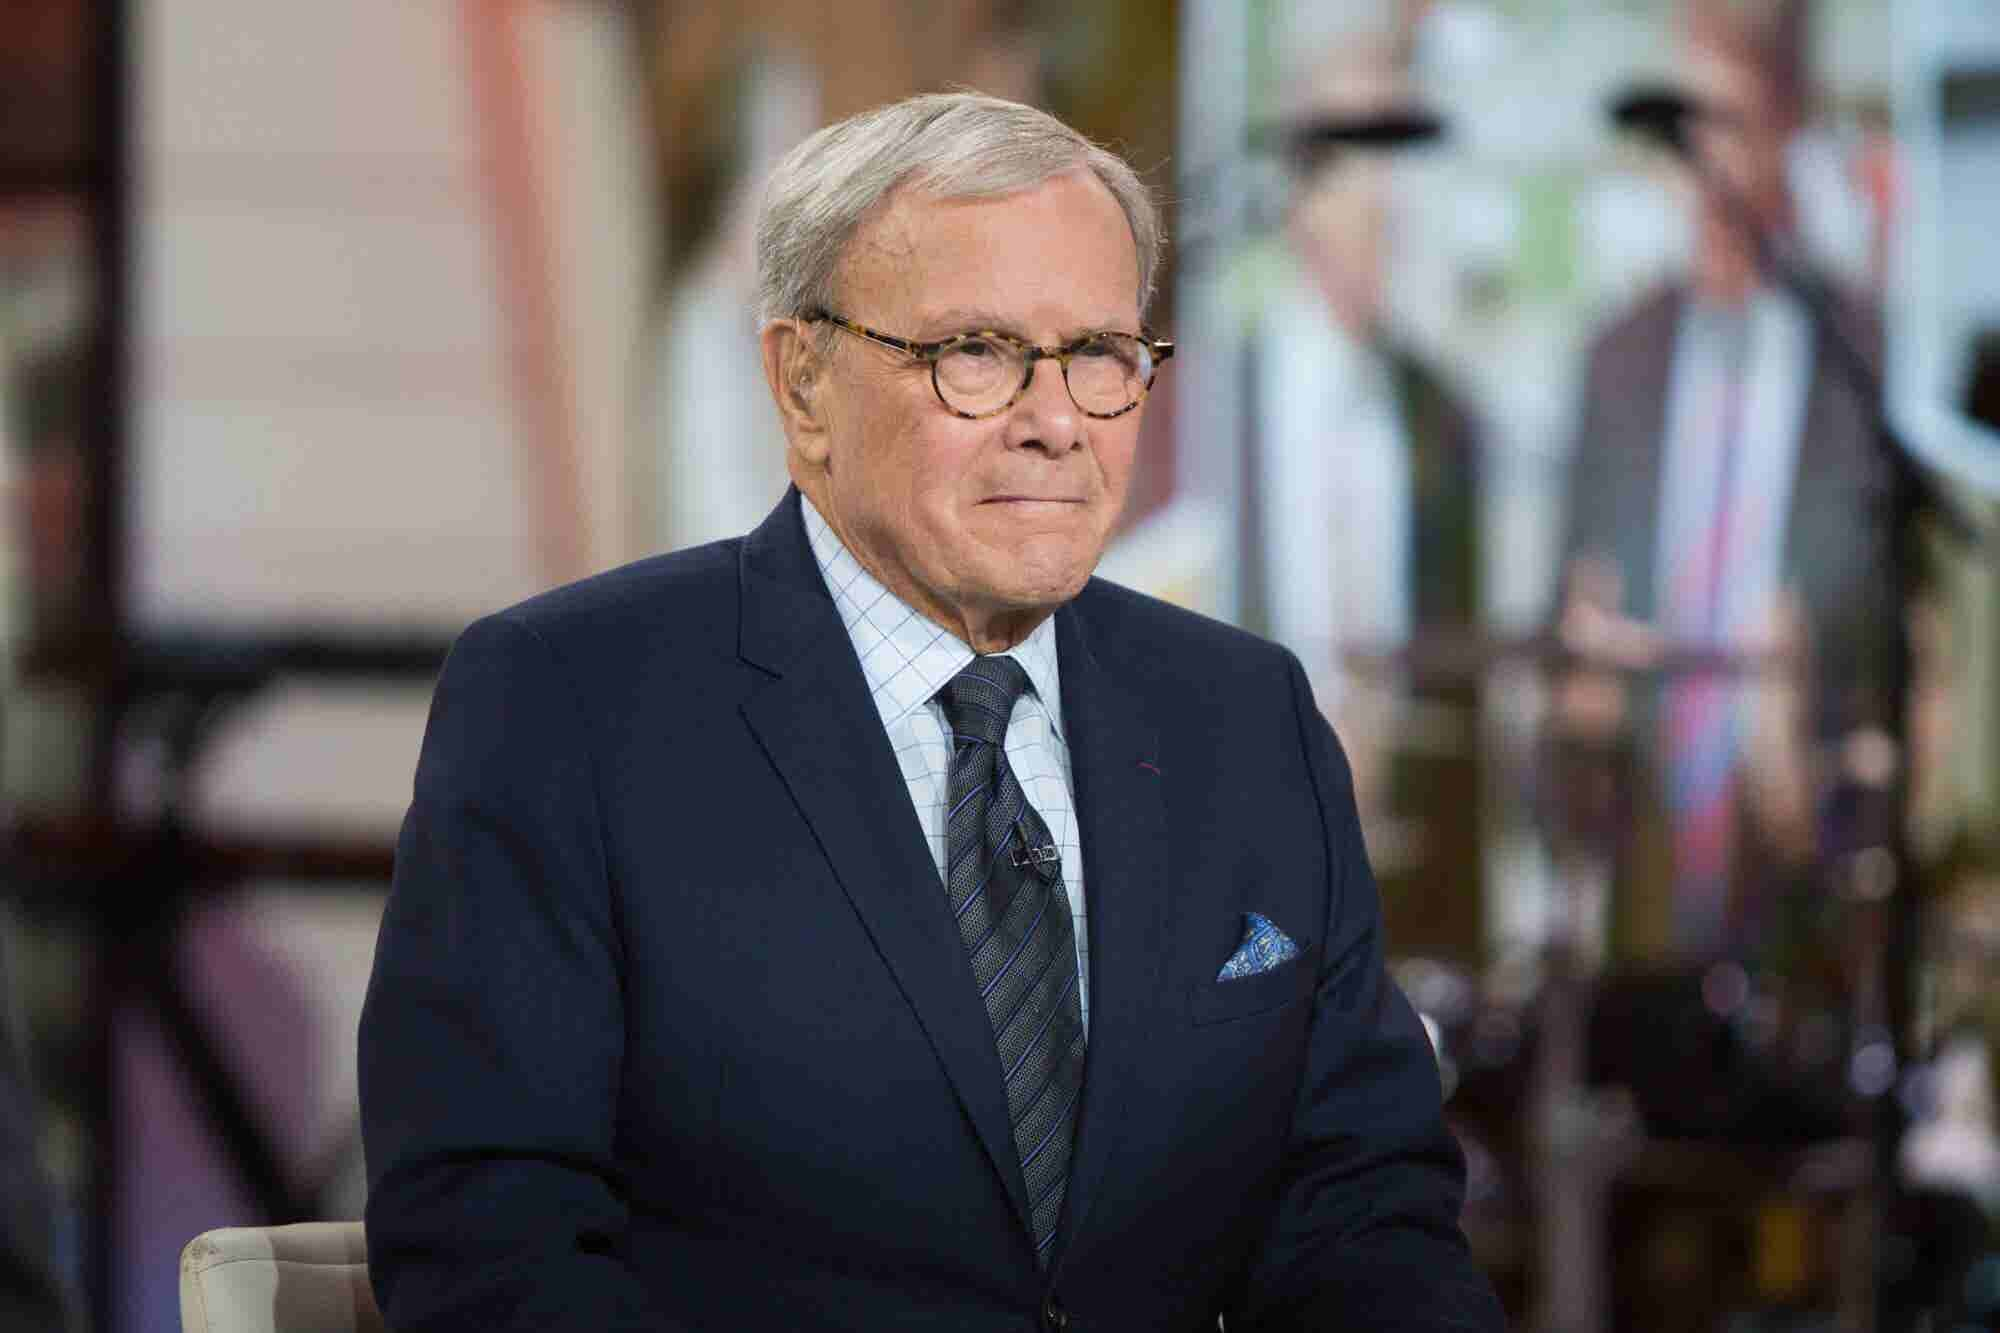 Famed Journalist and Cancer Survivor Tom Brokaw Reveals His Medical Marijuana Use